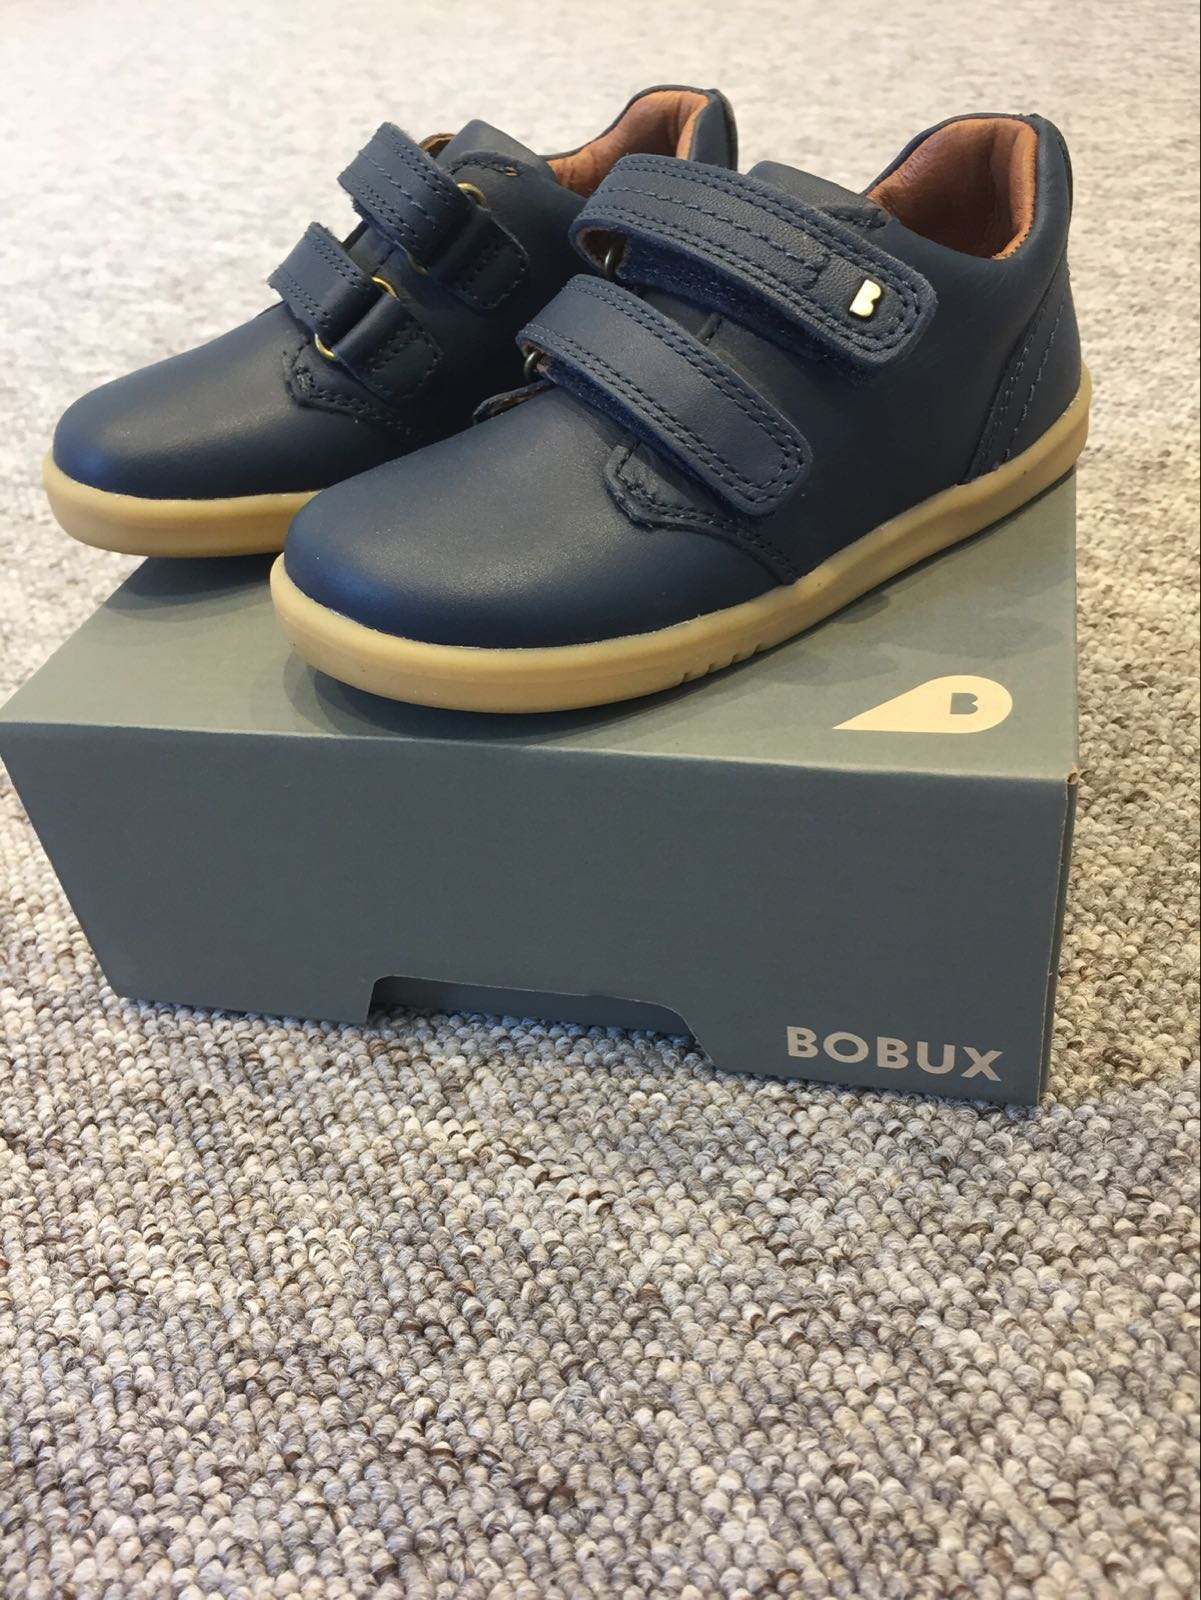 Bobux IW Port Dress Shoe Navy